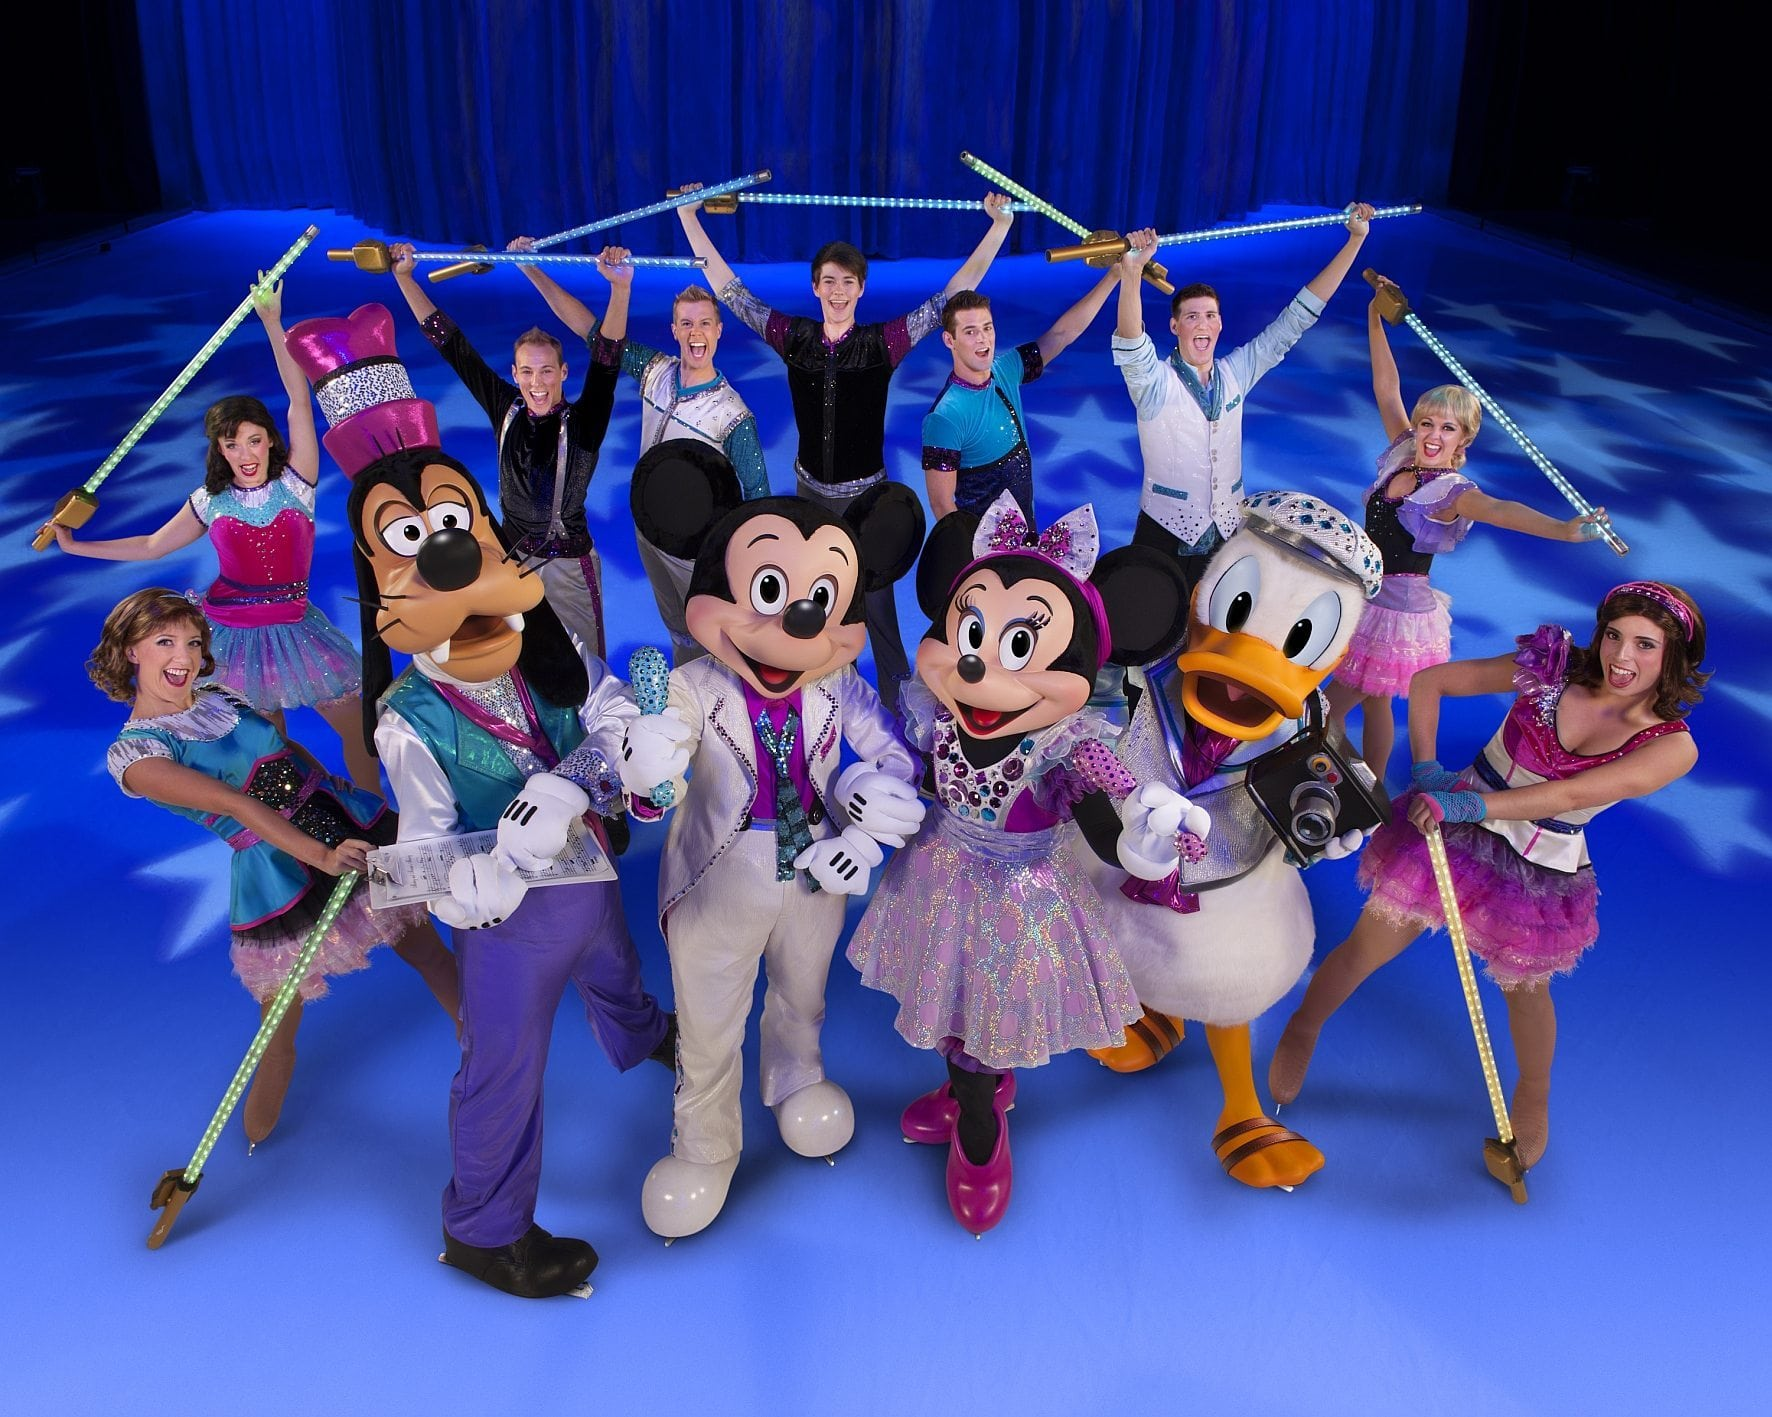 Disney Approved; Donald Duck; Fabs; Goofy; Mickey Mouse; Minnie Mouse; PR Setup; Rockstars